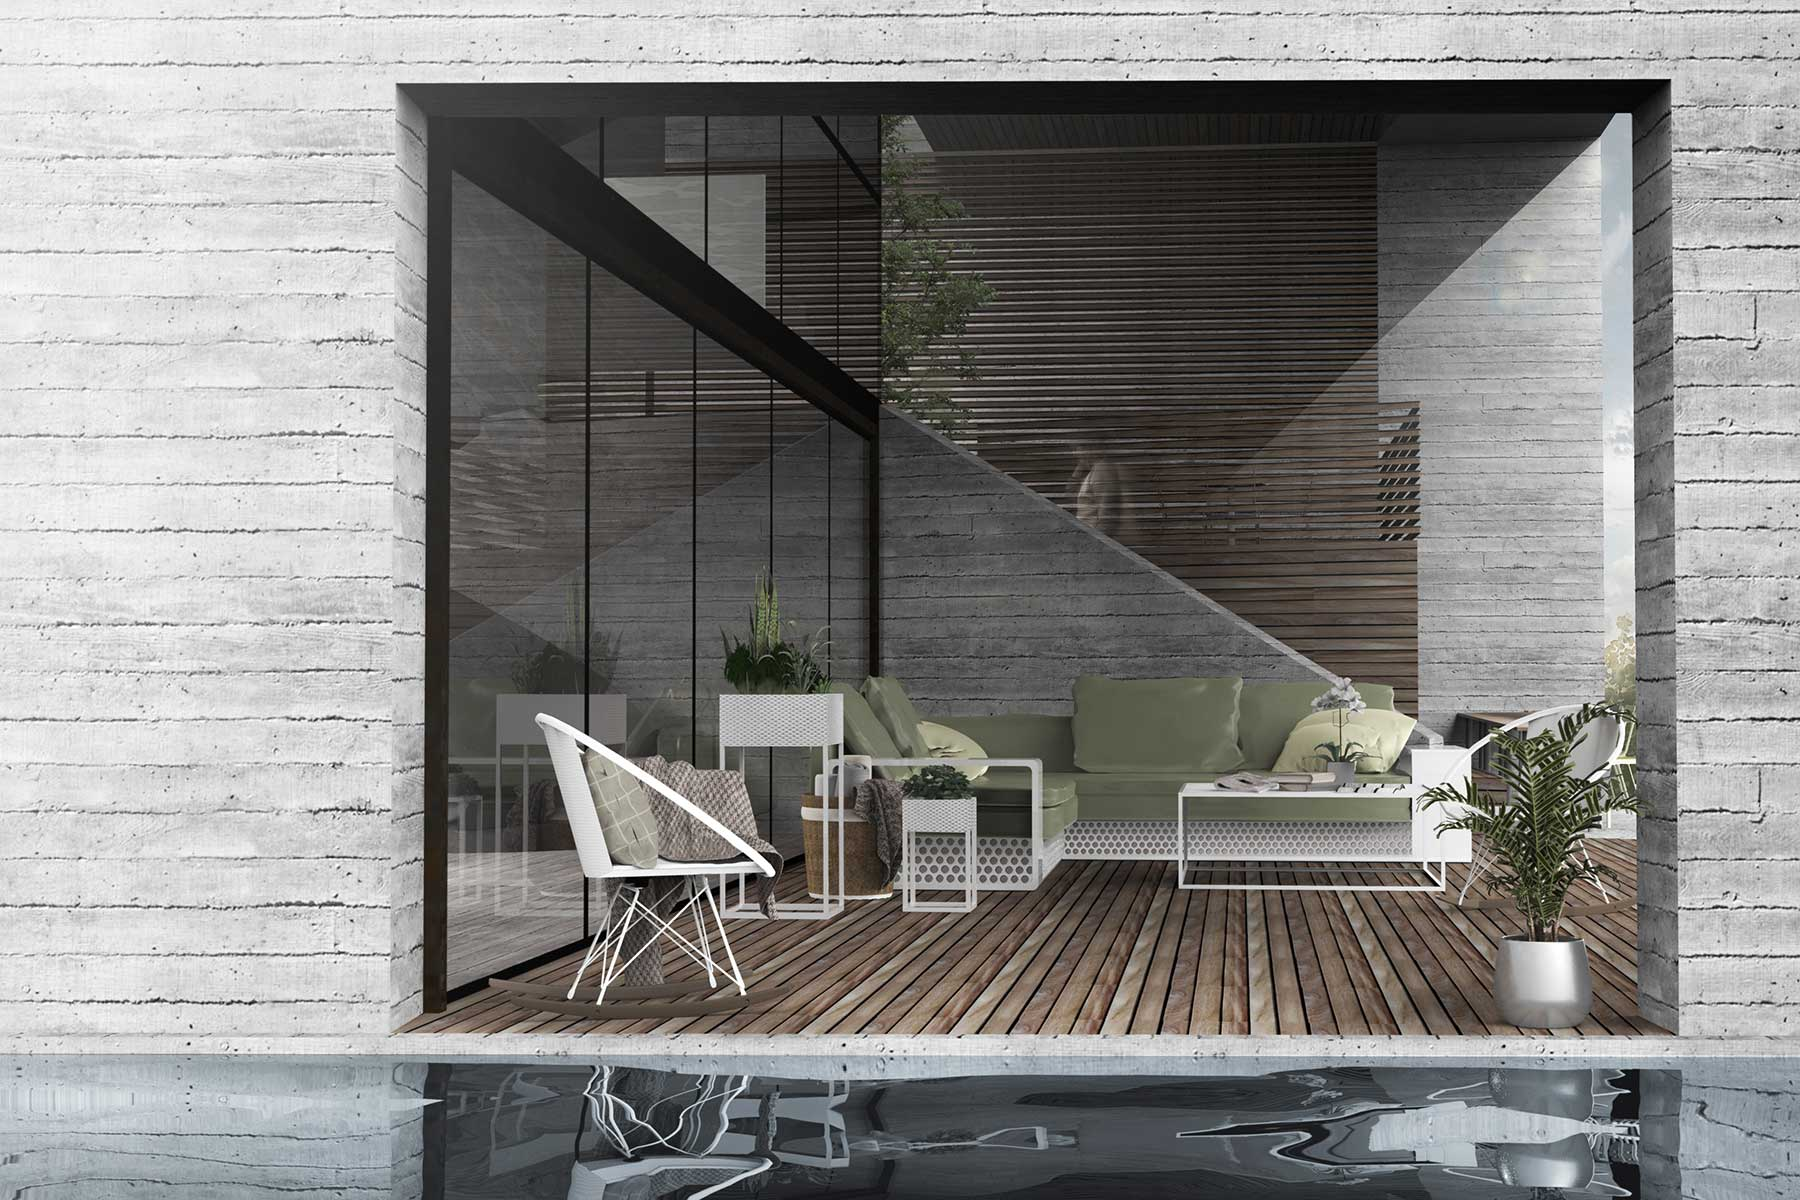 H2 (House Two) - architecture by Studio Y.